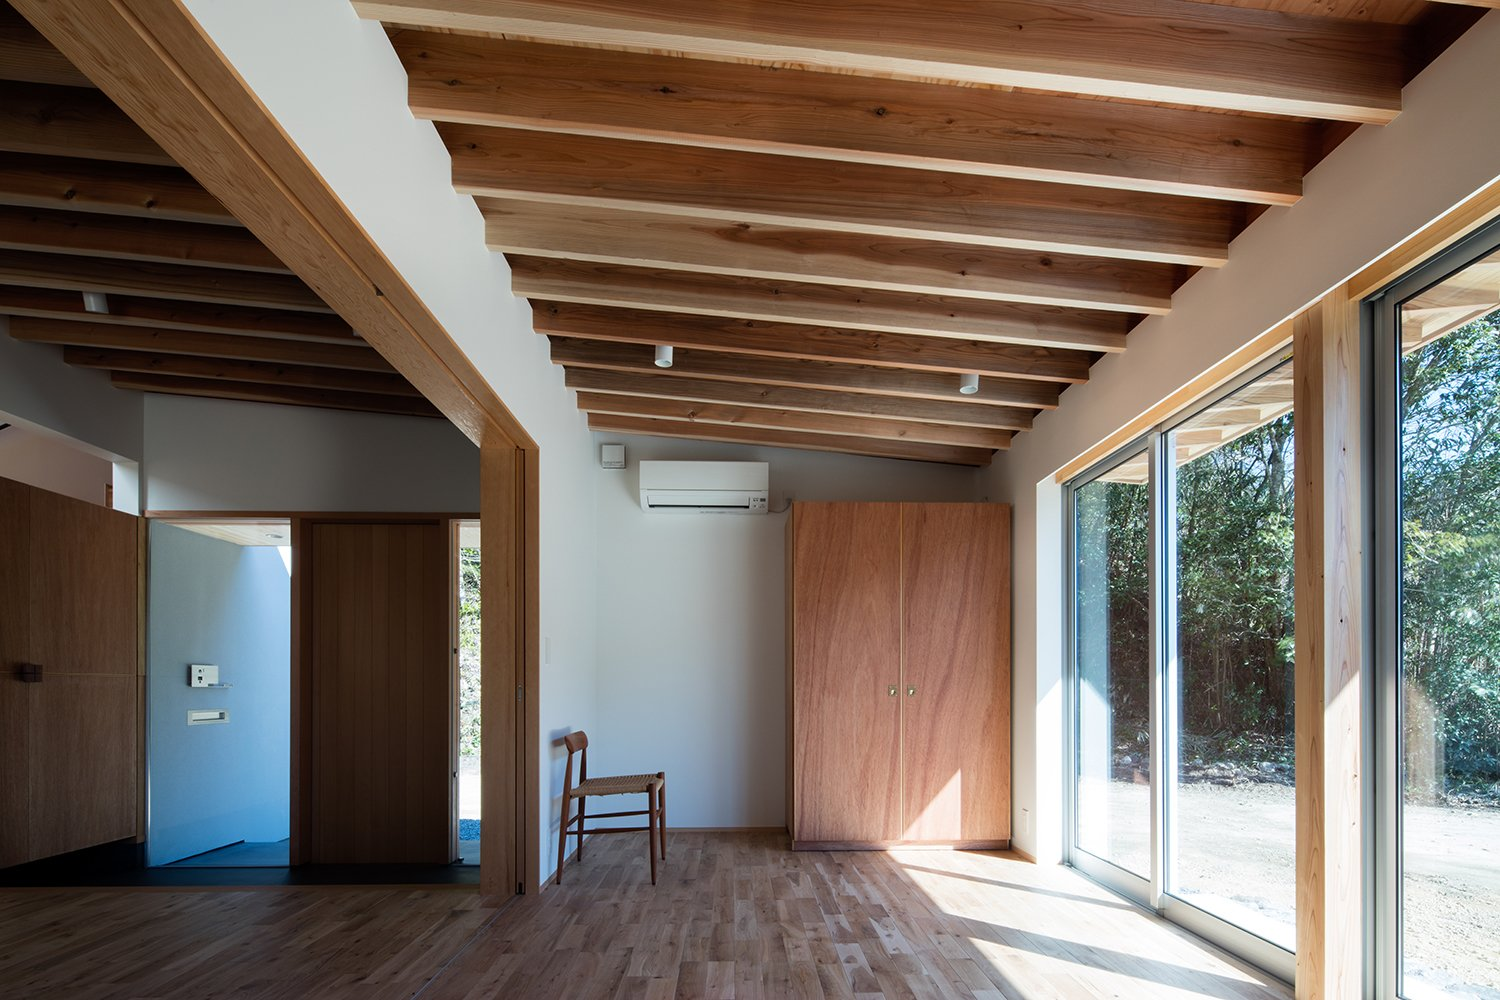 Photo 2 of 5 in House in Yasunami by TENK